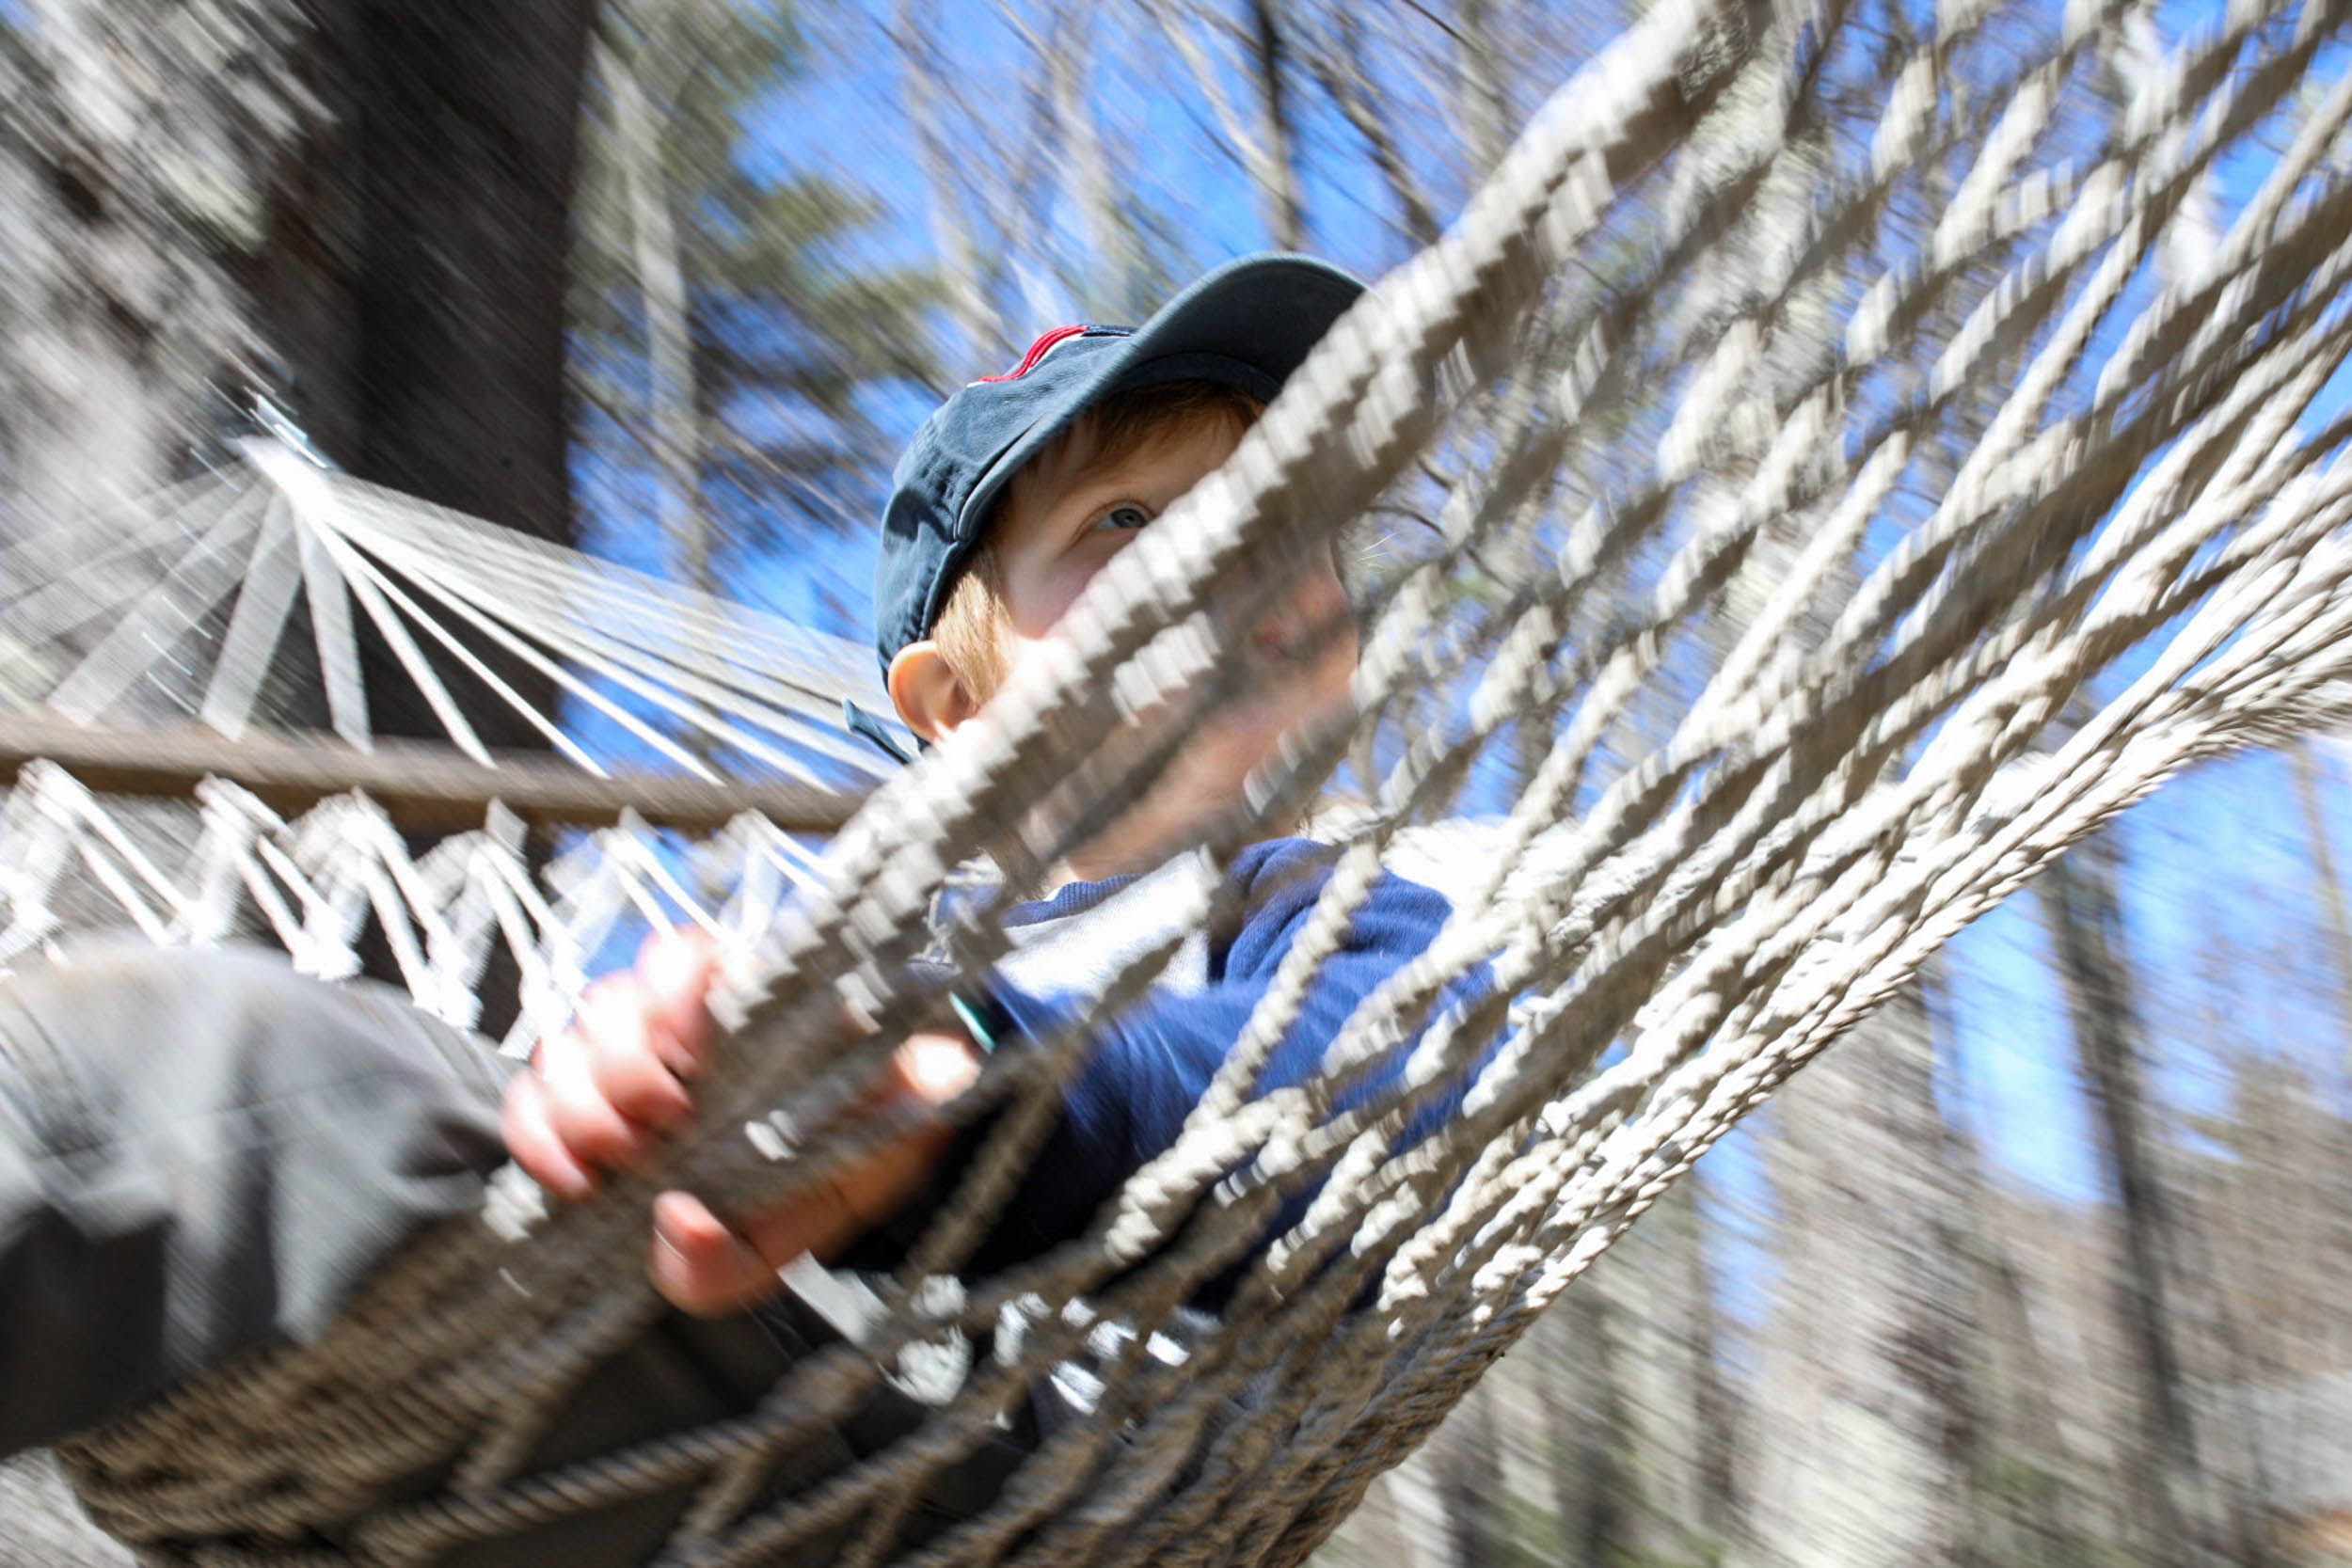 Boy wearing a baseball hat swinging in a hammock under blue skies in Alton New Hampshire during spring